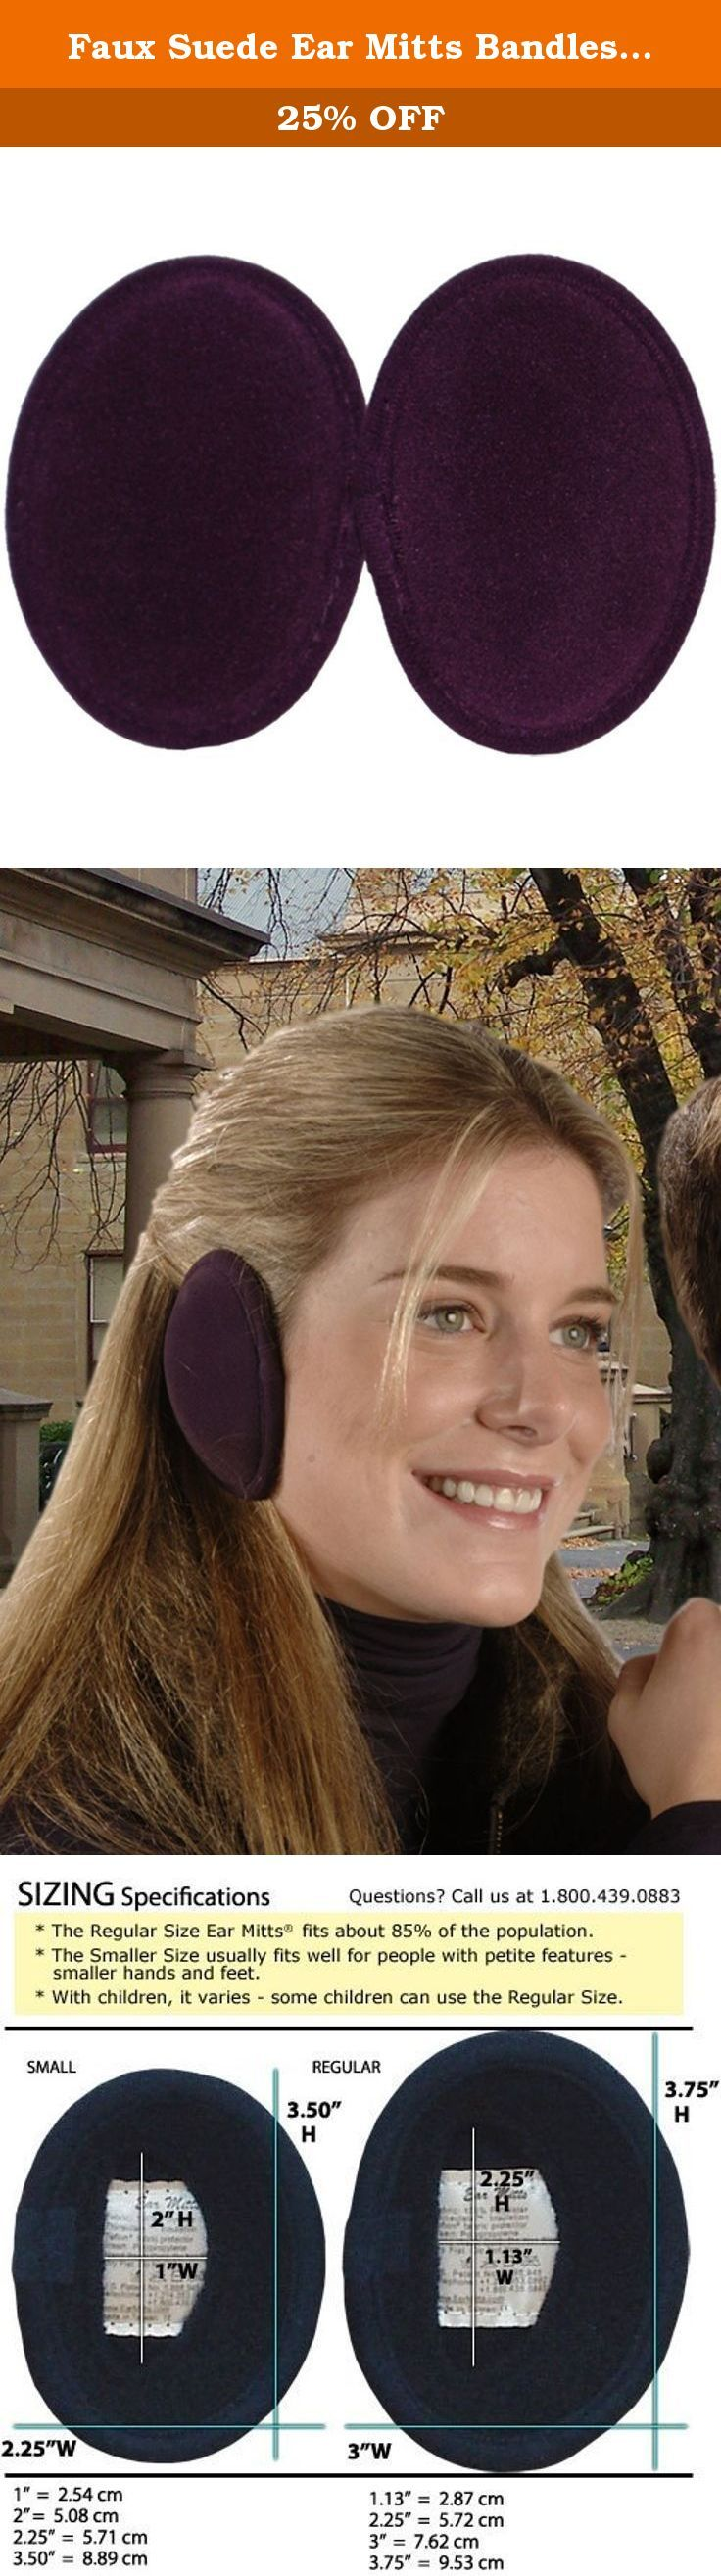 Faux Suede Ear Mitts Bandless Ear Muffs 100g ThinsulateTM Insulation & DuPontTM Teflon® (Camel or Suede - 2 Sizes) (Regular, Eggplant). Ear Mitts® are designed to fit securely on your ears, keeping them protected from the wind and cold. Three layers - durable faux suede, 100 gram ThinsulateTM Insulation from 3M, and a DuPontTM Teflon® fabric protector infused anti-pill fleece inner lining - keep warmth in and the wind and cold air out. A patented flexible polypropylene frame adjusts to…